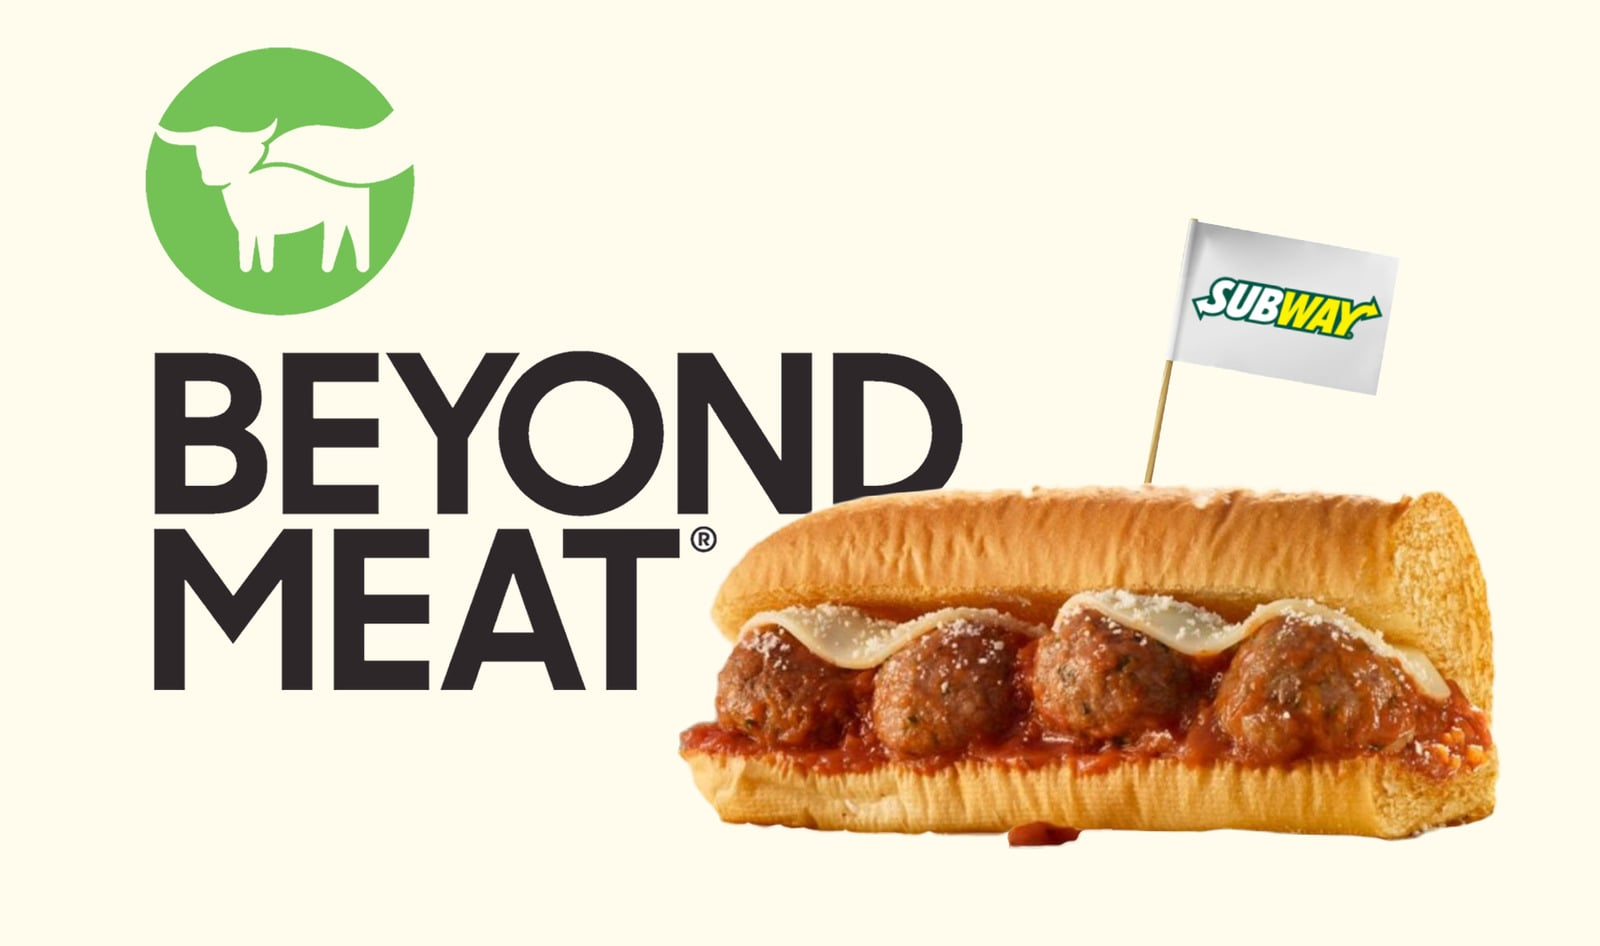 Subway Launches Beyond Meatball Sandwich Across US and Canada